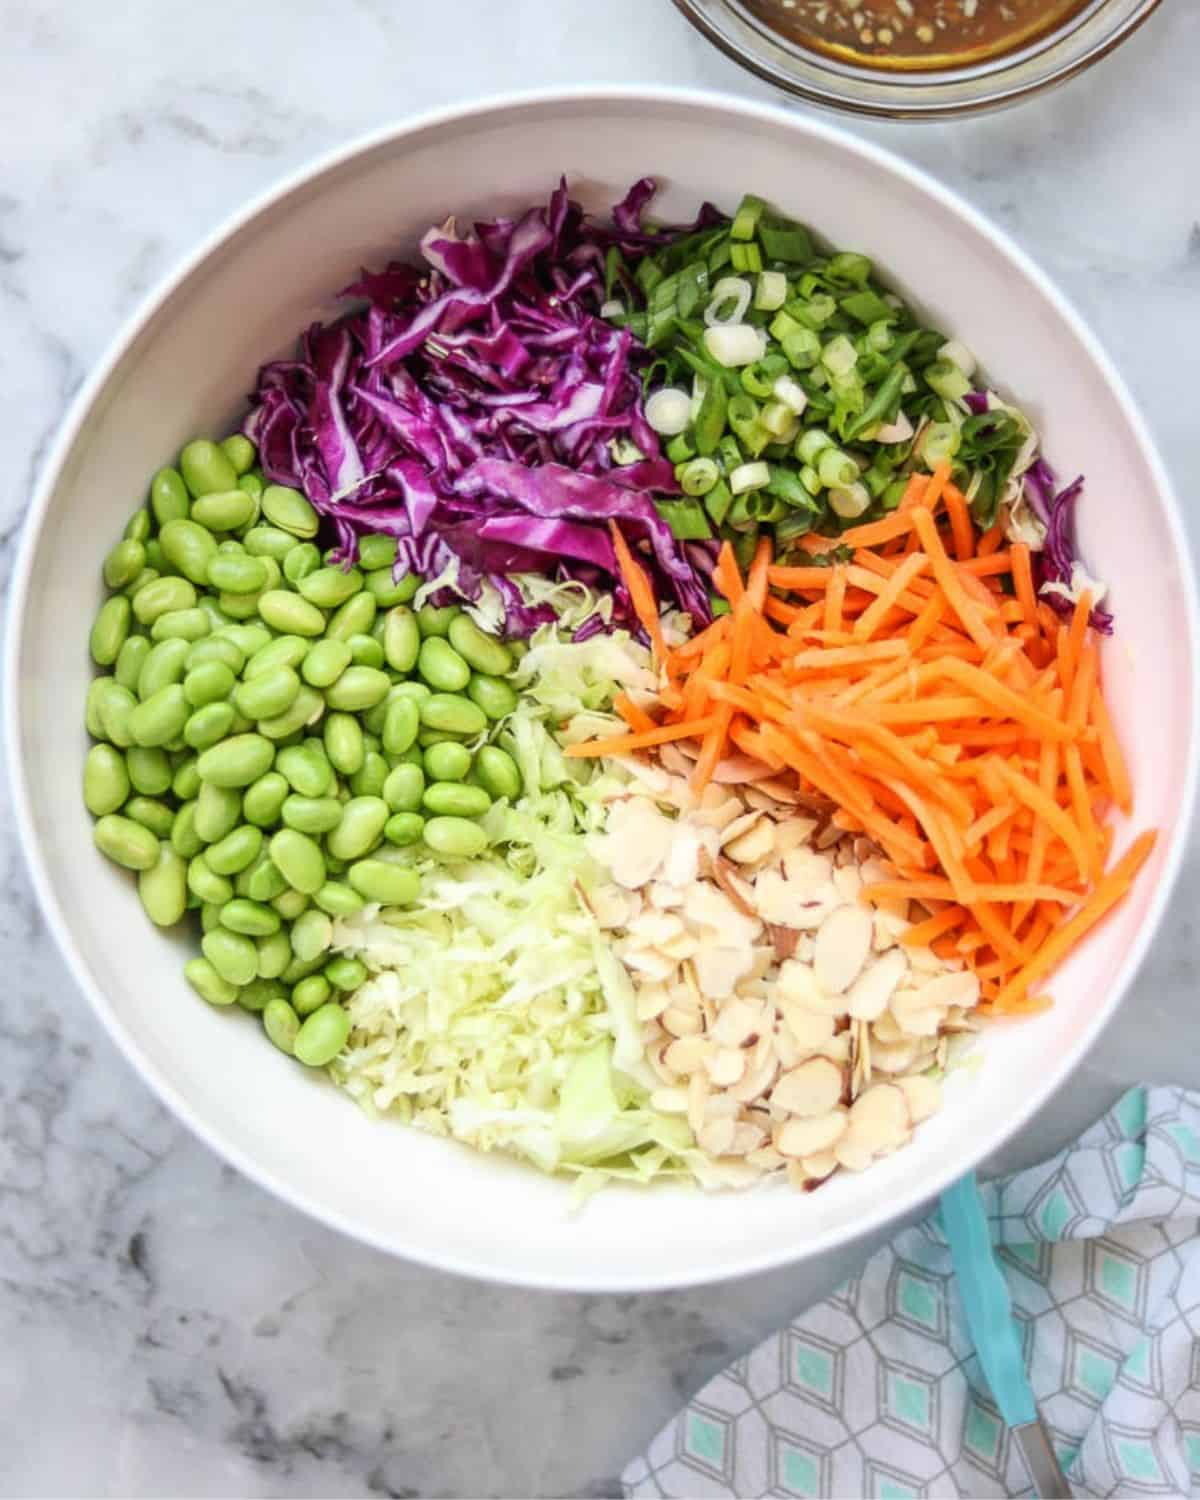 Ingredients for cabbage ramen salad in a bowl.